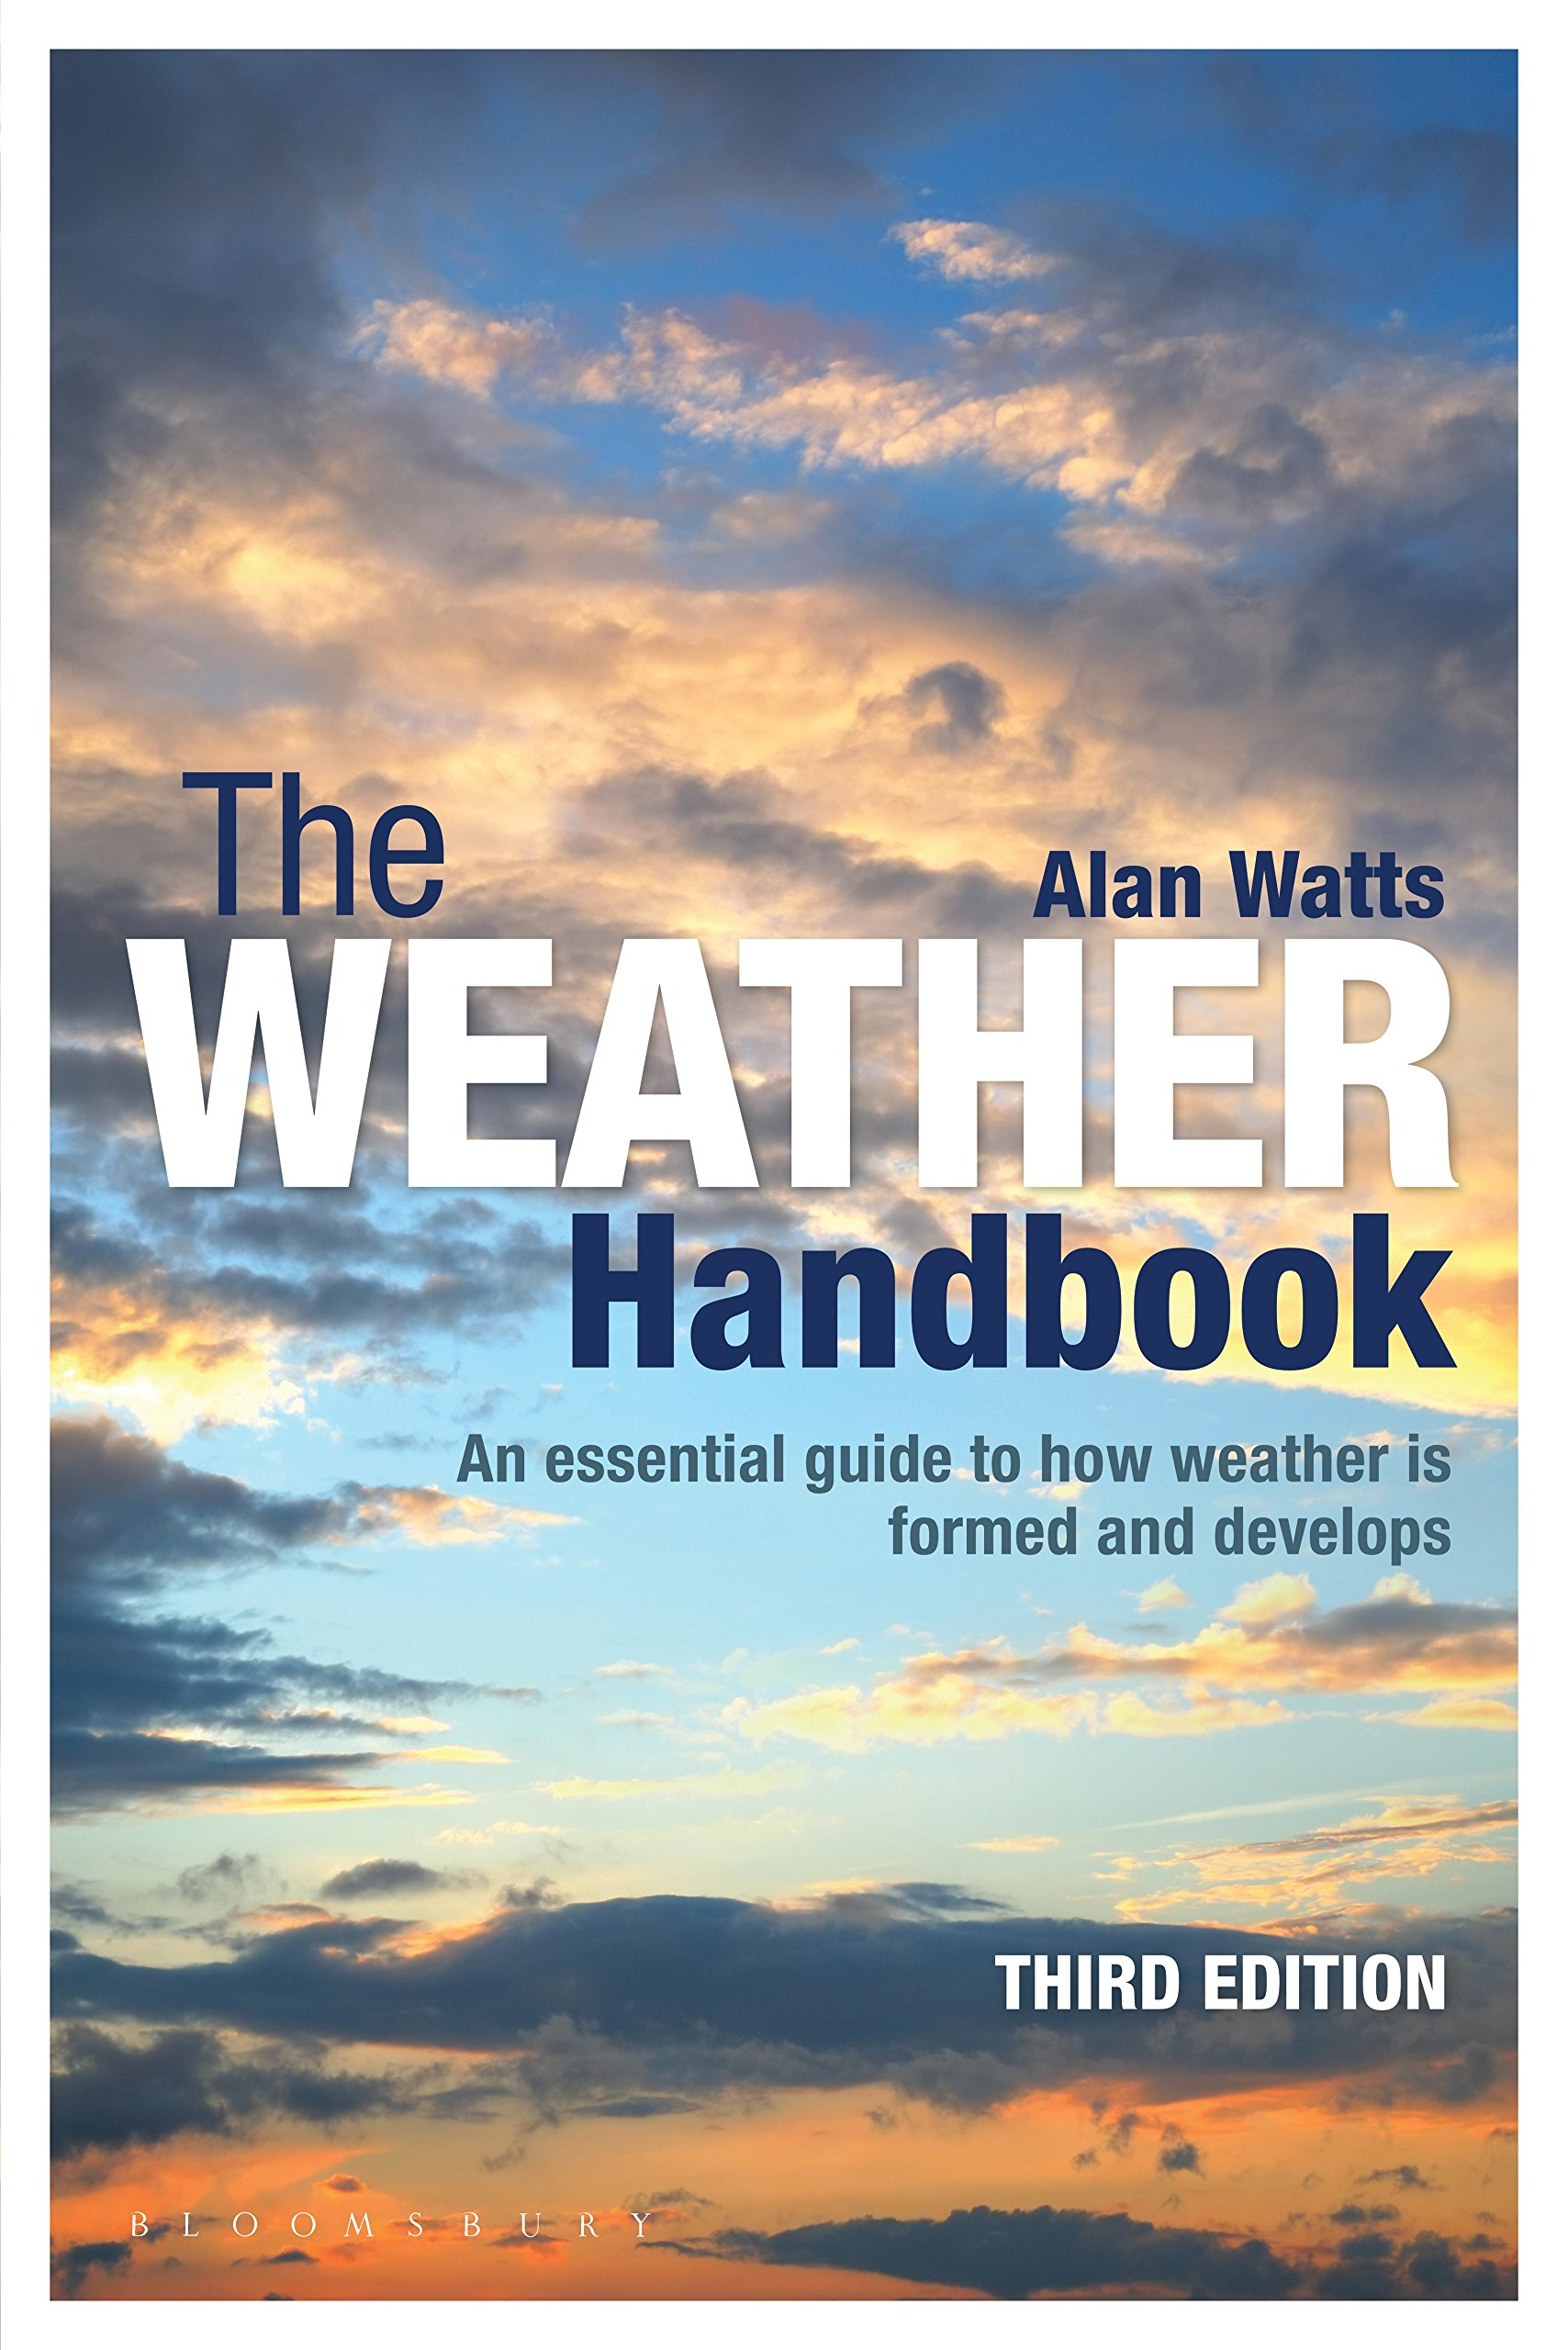 Image OfThe Weather Handbook: An Essential Guide To How Weather Is Formed And Develops (English Edition)